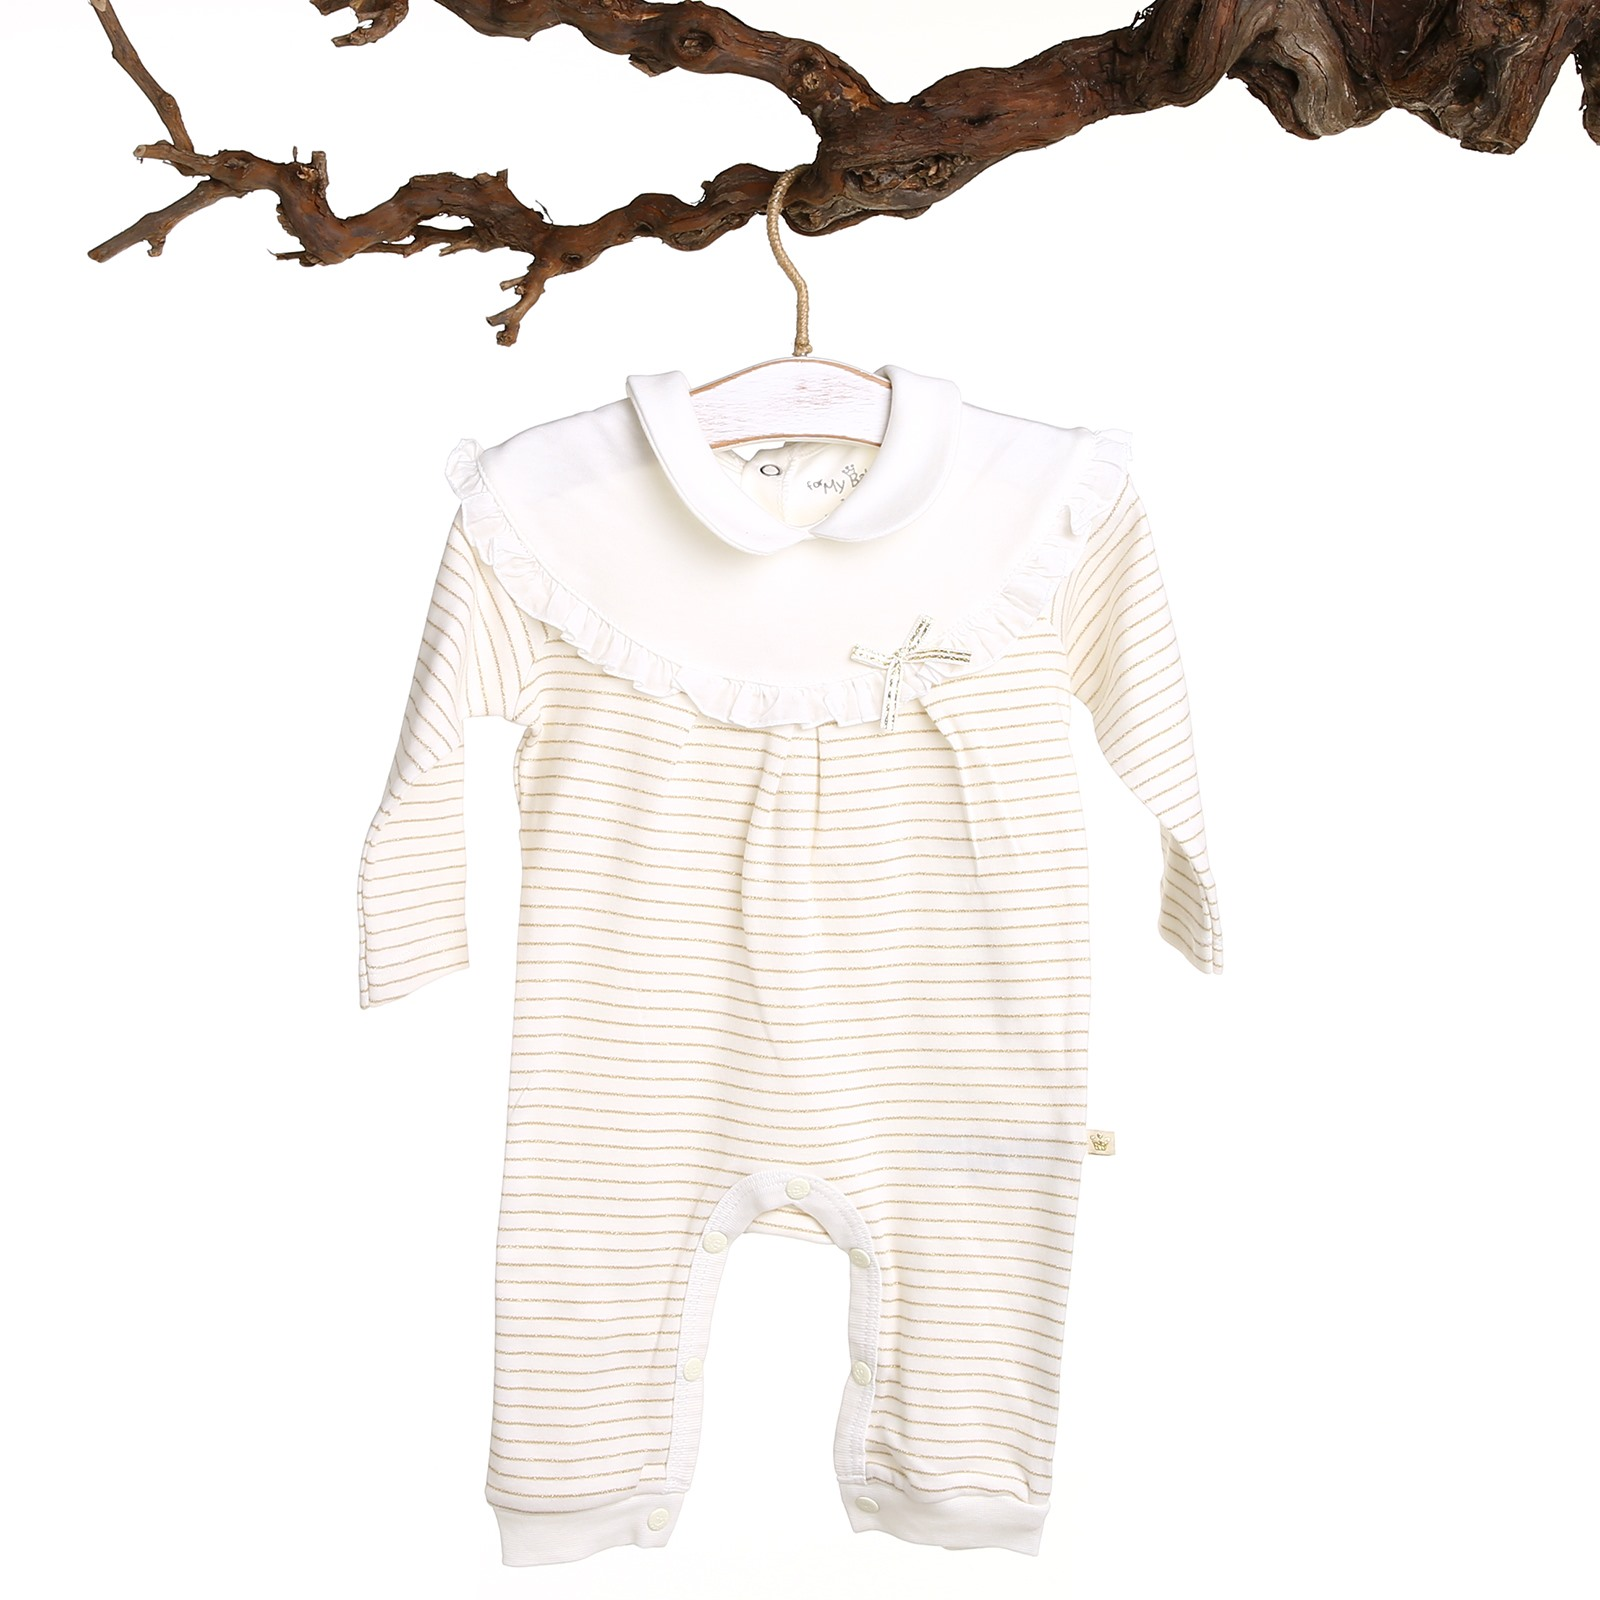 Ebebek For My Baby Bodysuit With Pan CollaR Baby Ribbed Outfit Long Sleeve Romper